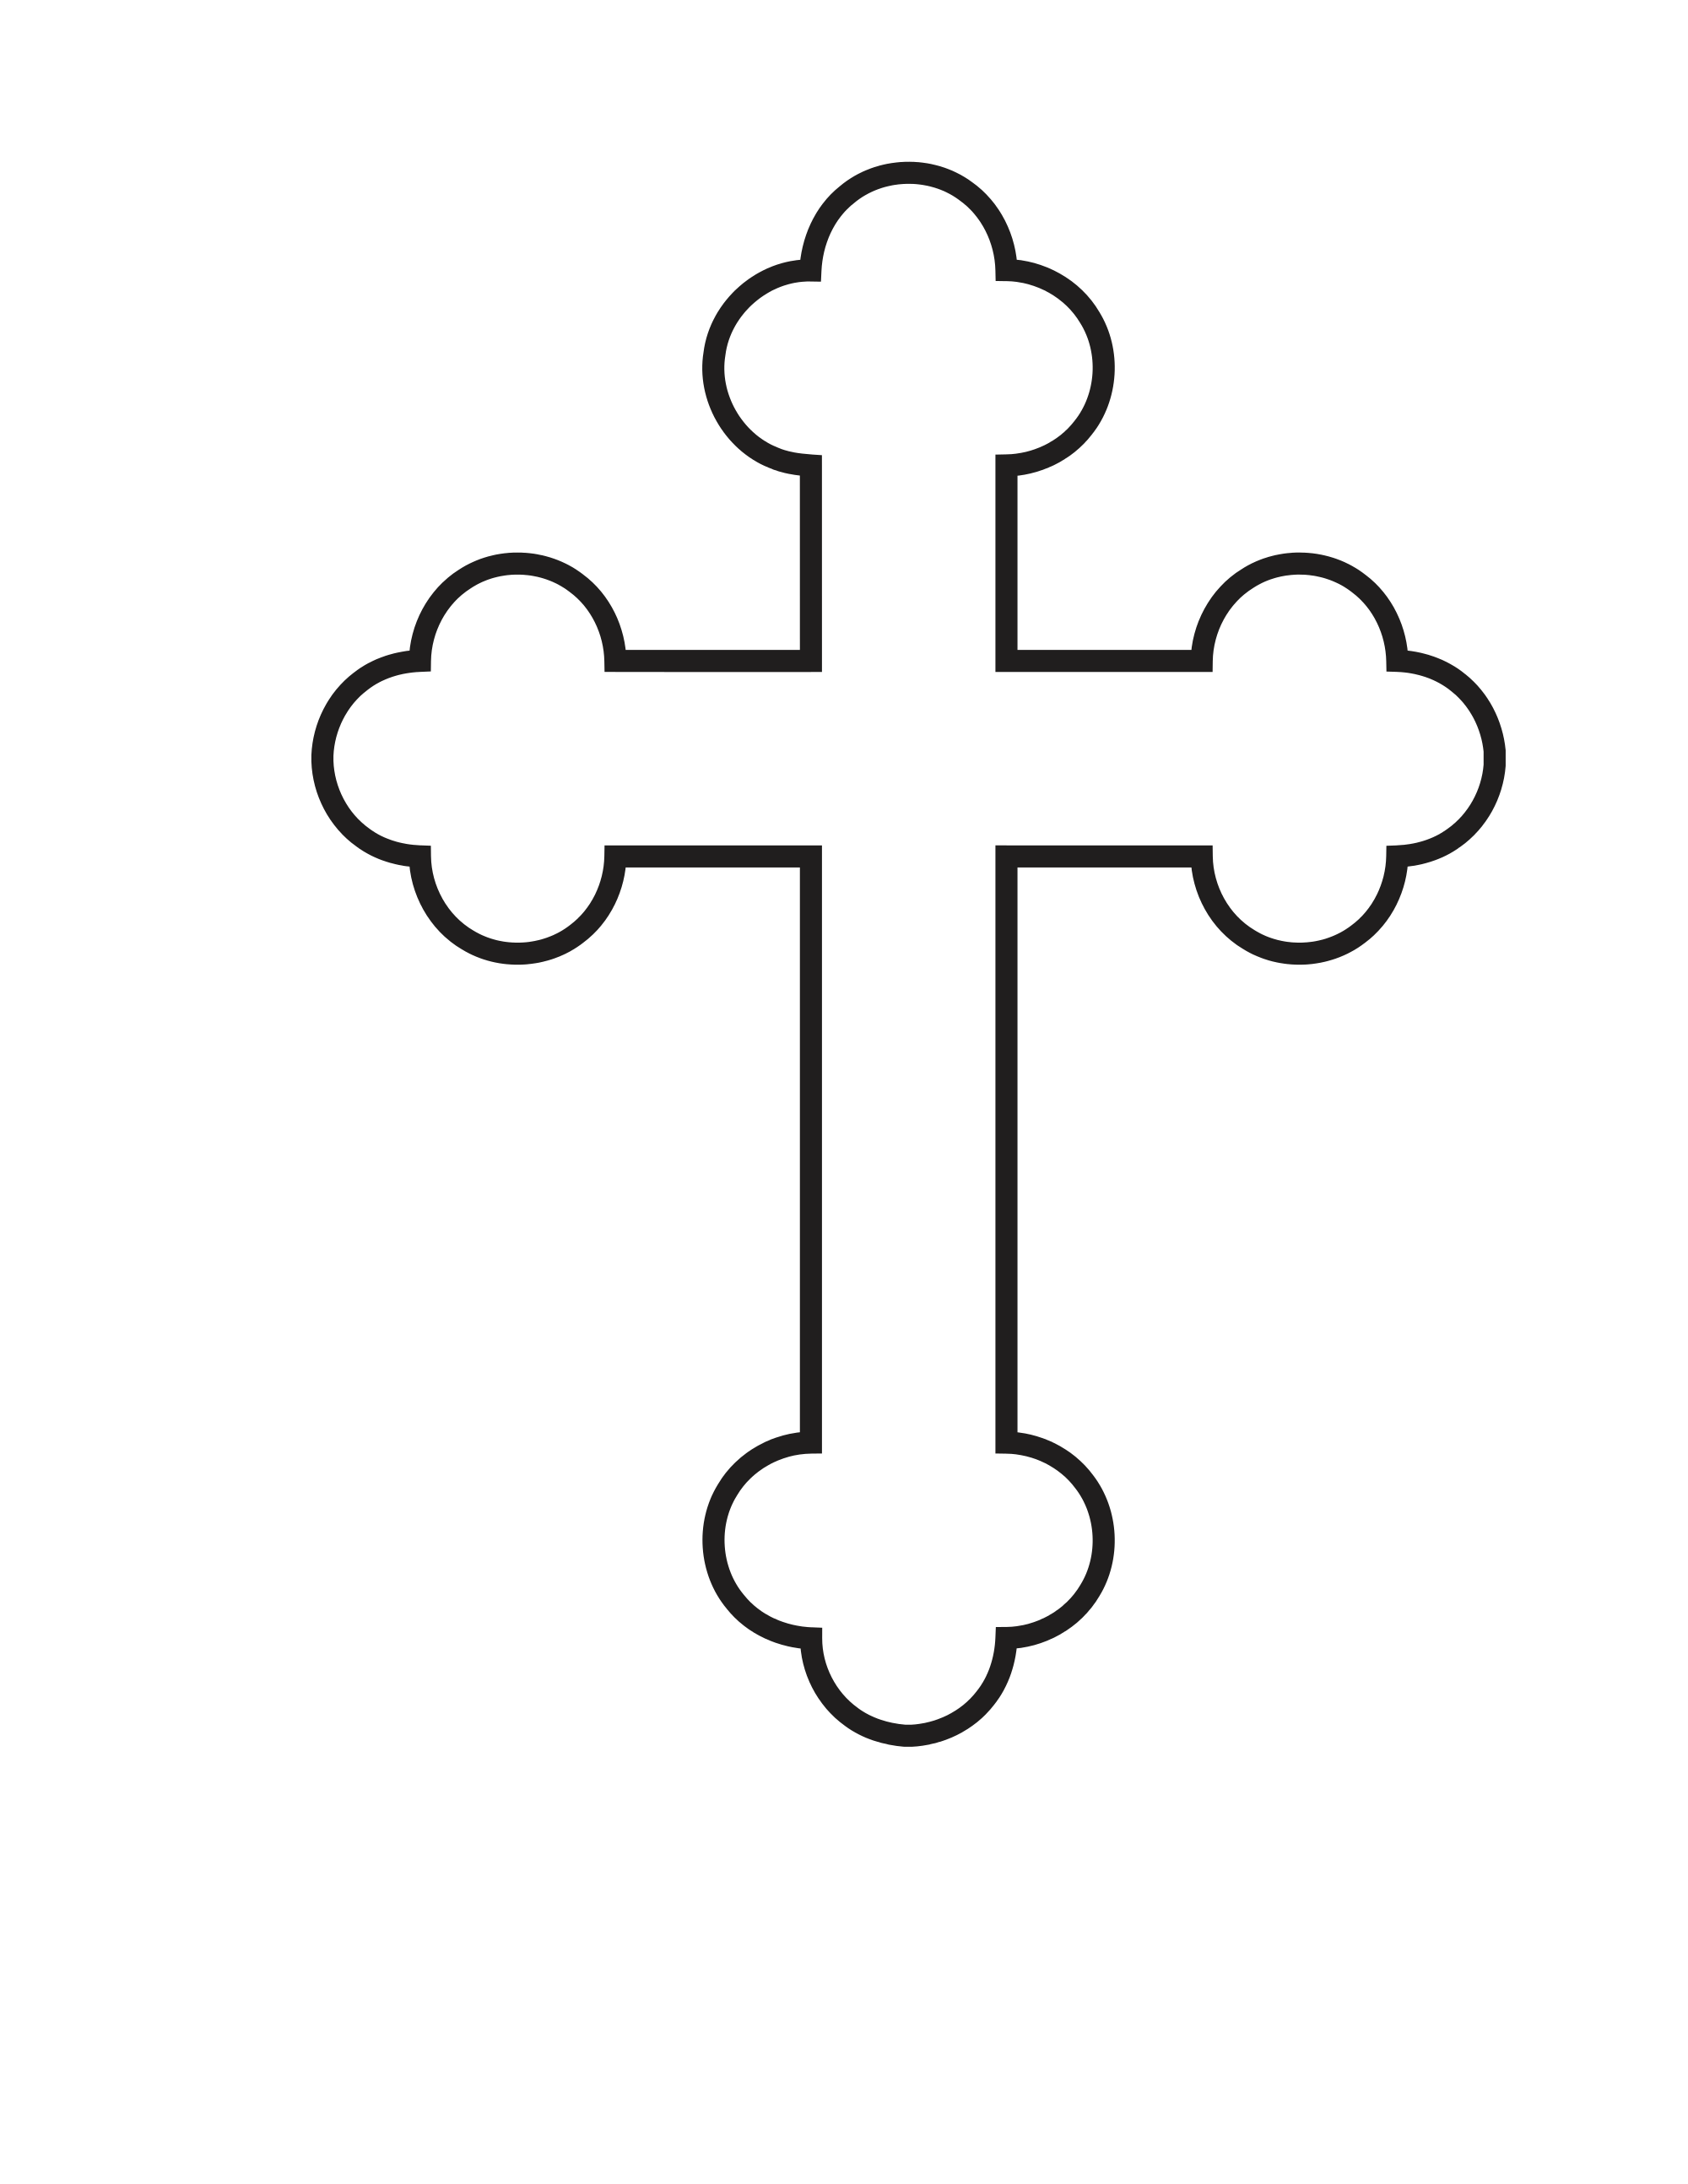 File:Serbian Orthodoxy cross 1.svg.